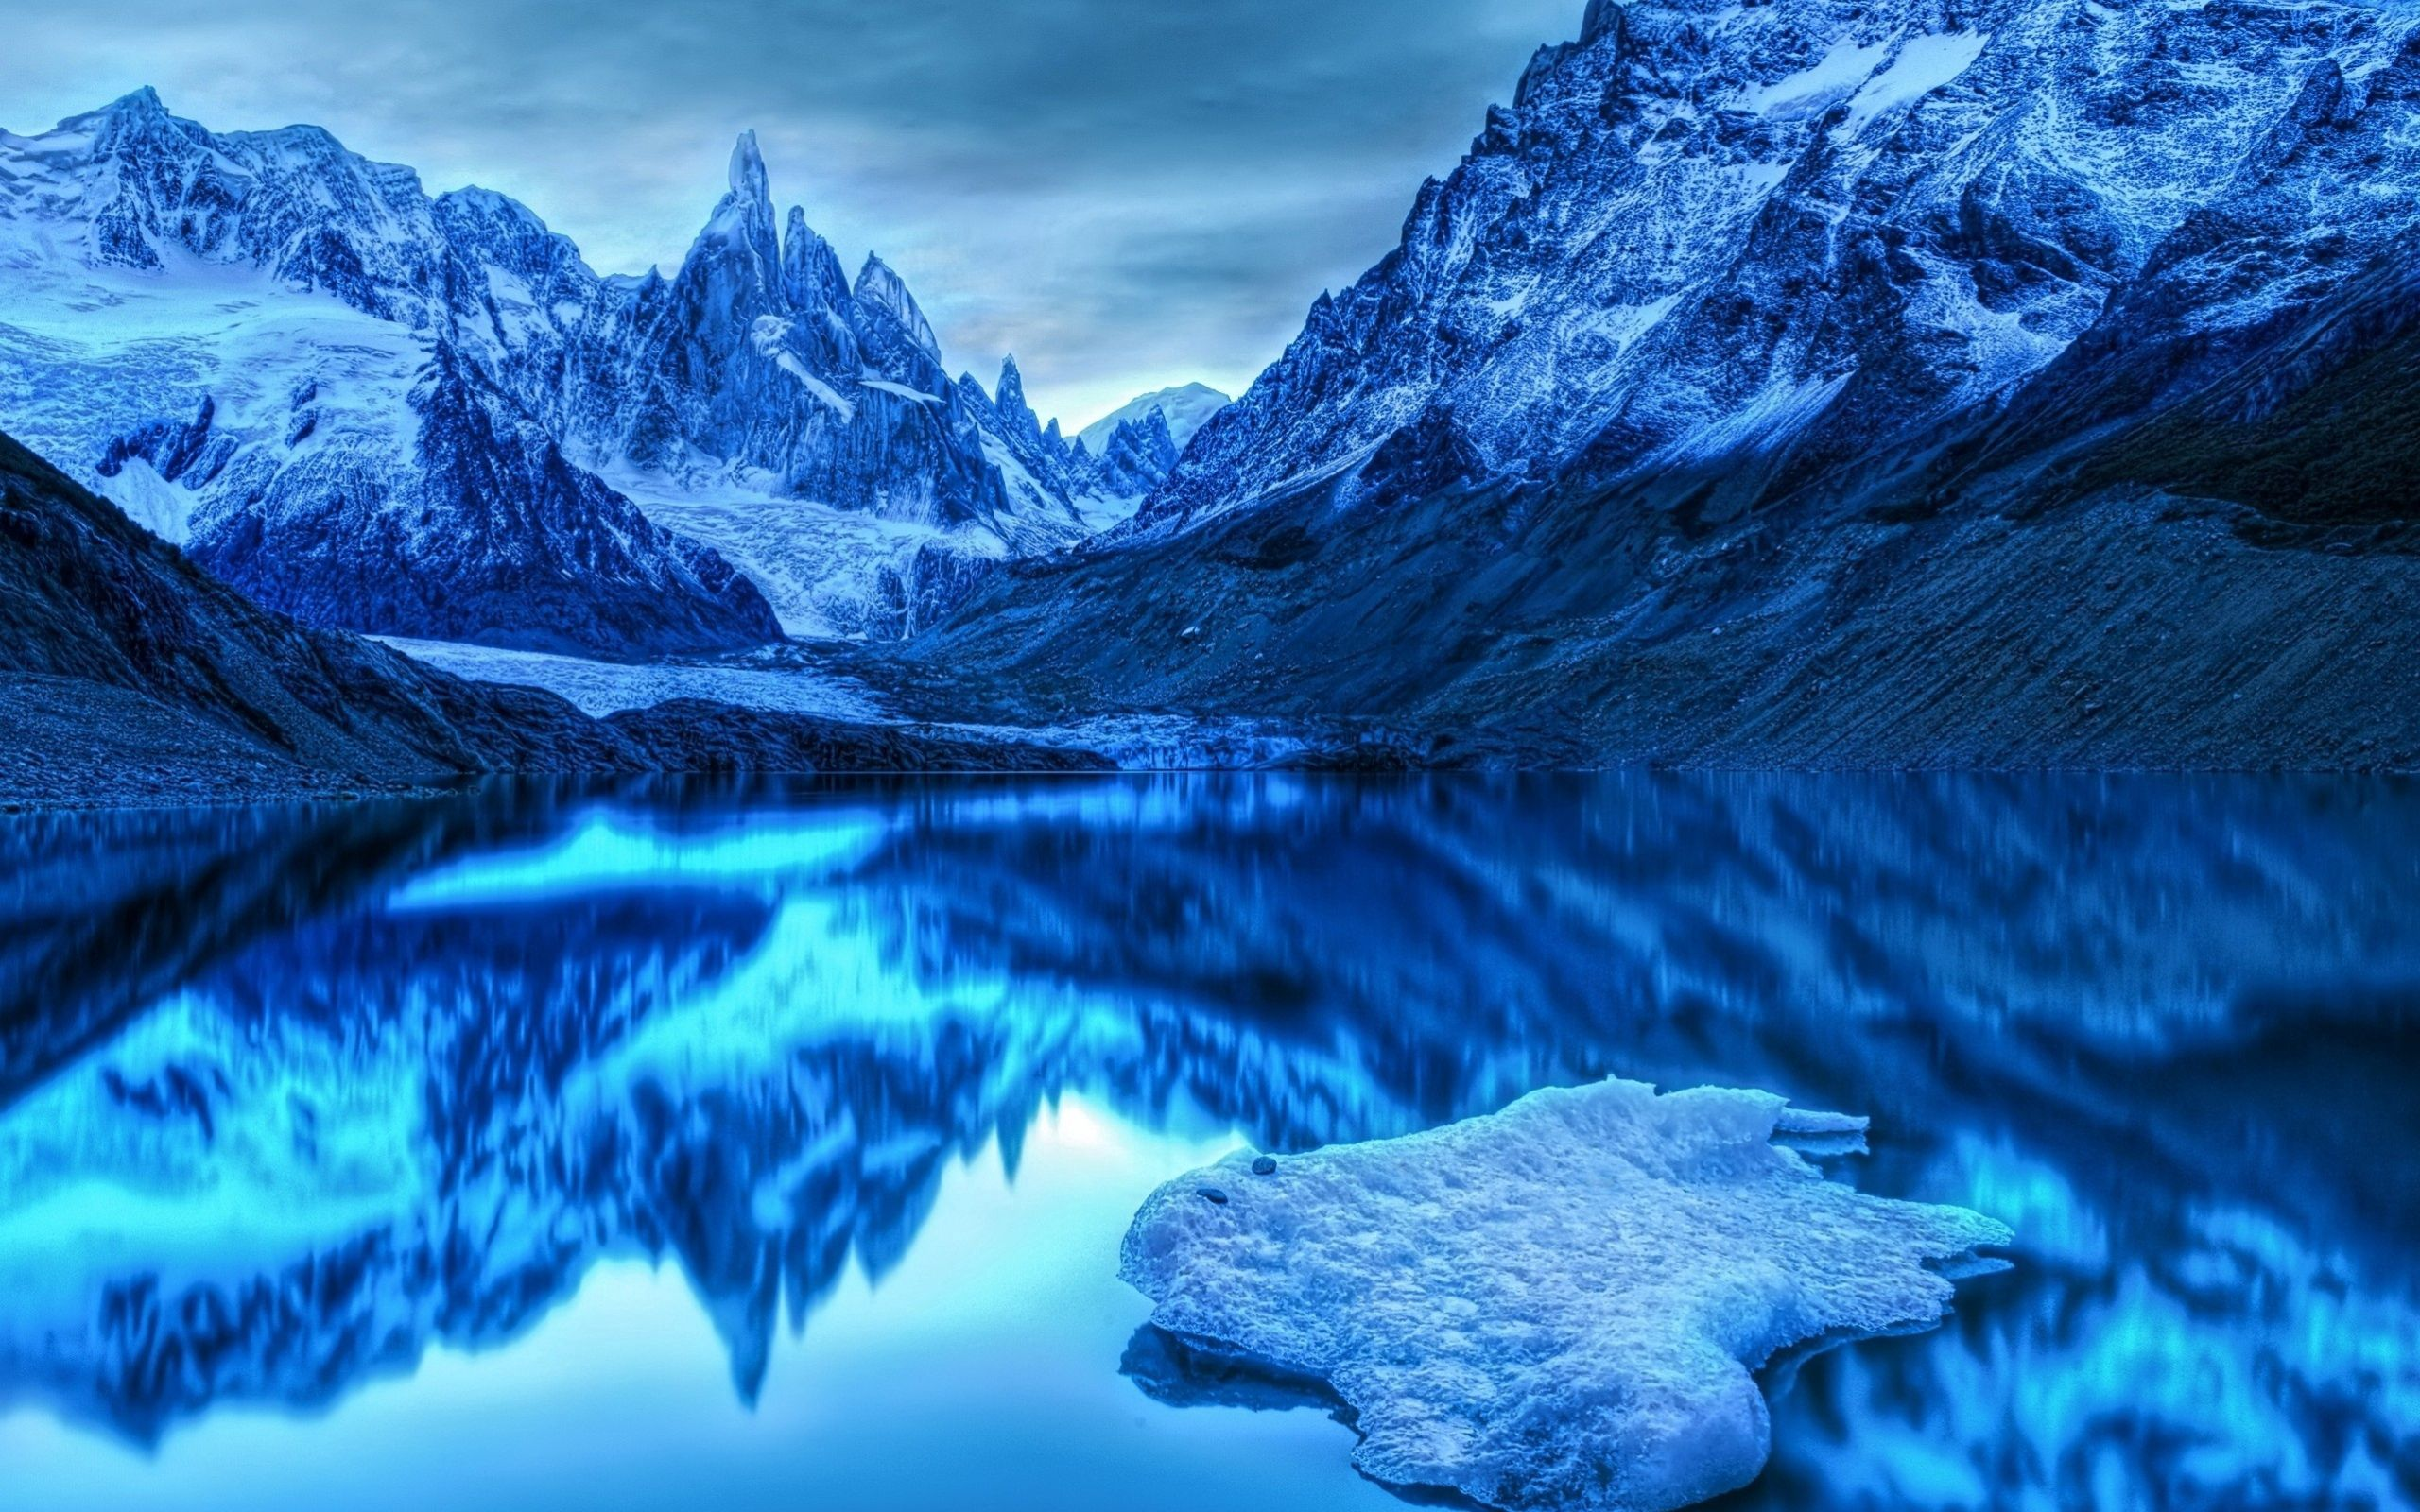 65936 download wallpaper Nature, Mountains, Ice, Snow, Lake, Reflection screensavers and pictures for free